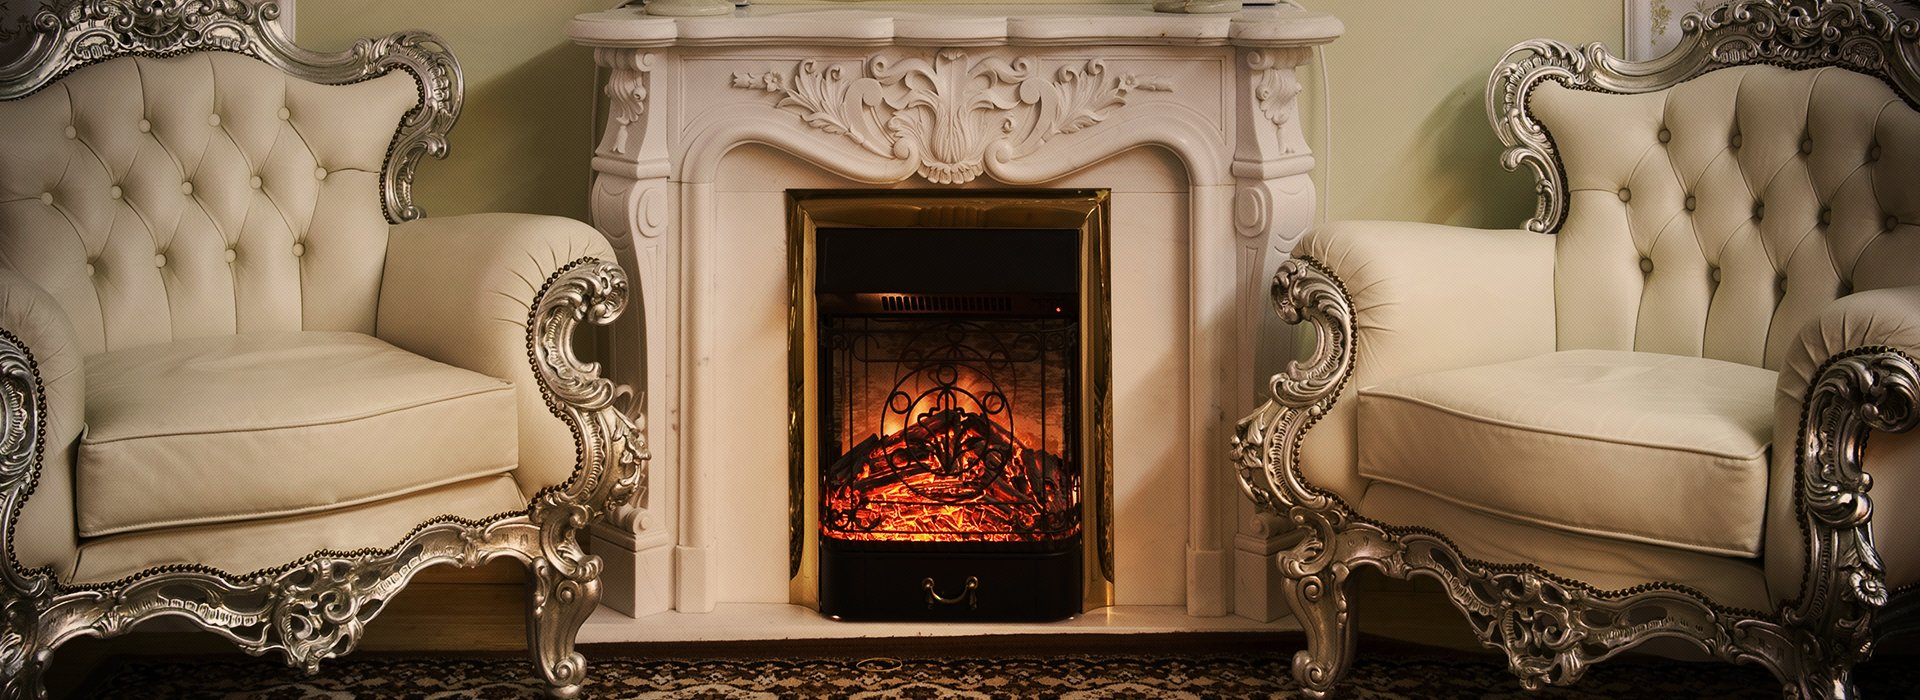 Two cream armchairs with ornate frames on either side of a glowing fireplace with stone surround